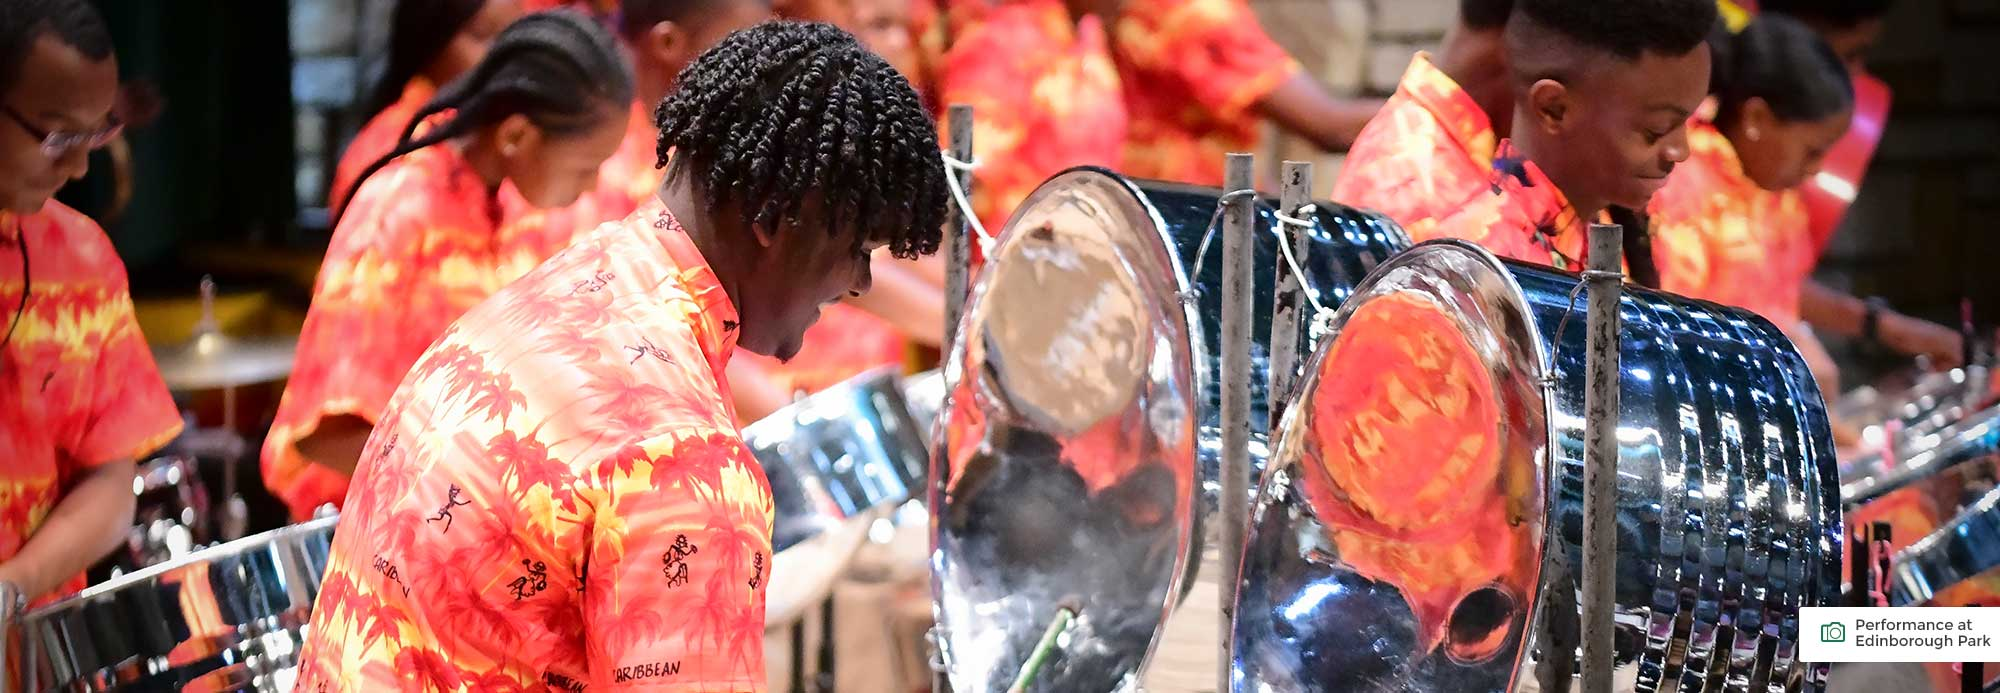 Youth Steel Orchestra from the U.S. Virgin Islands performance at Edinborough Park